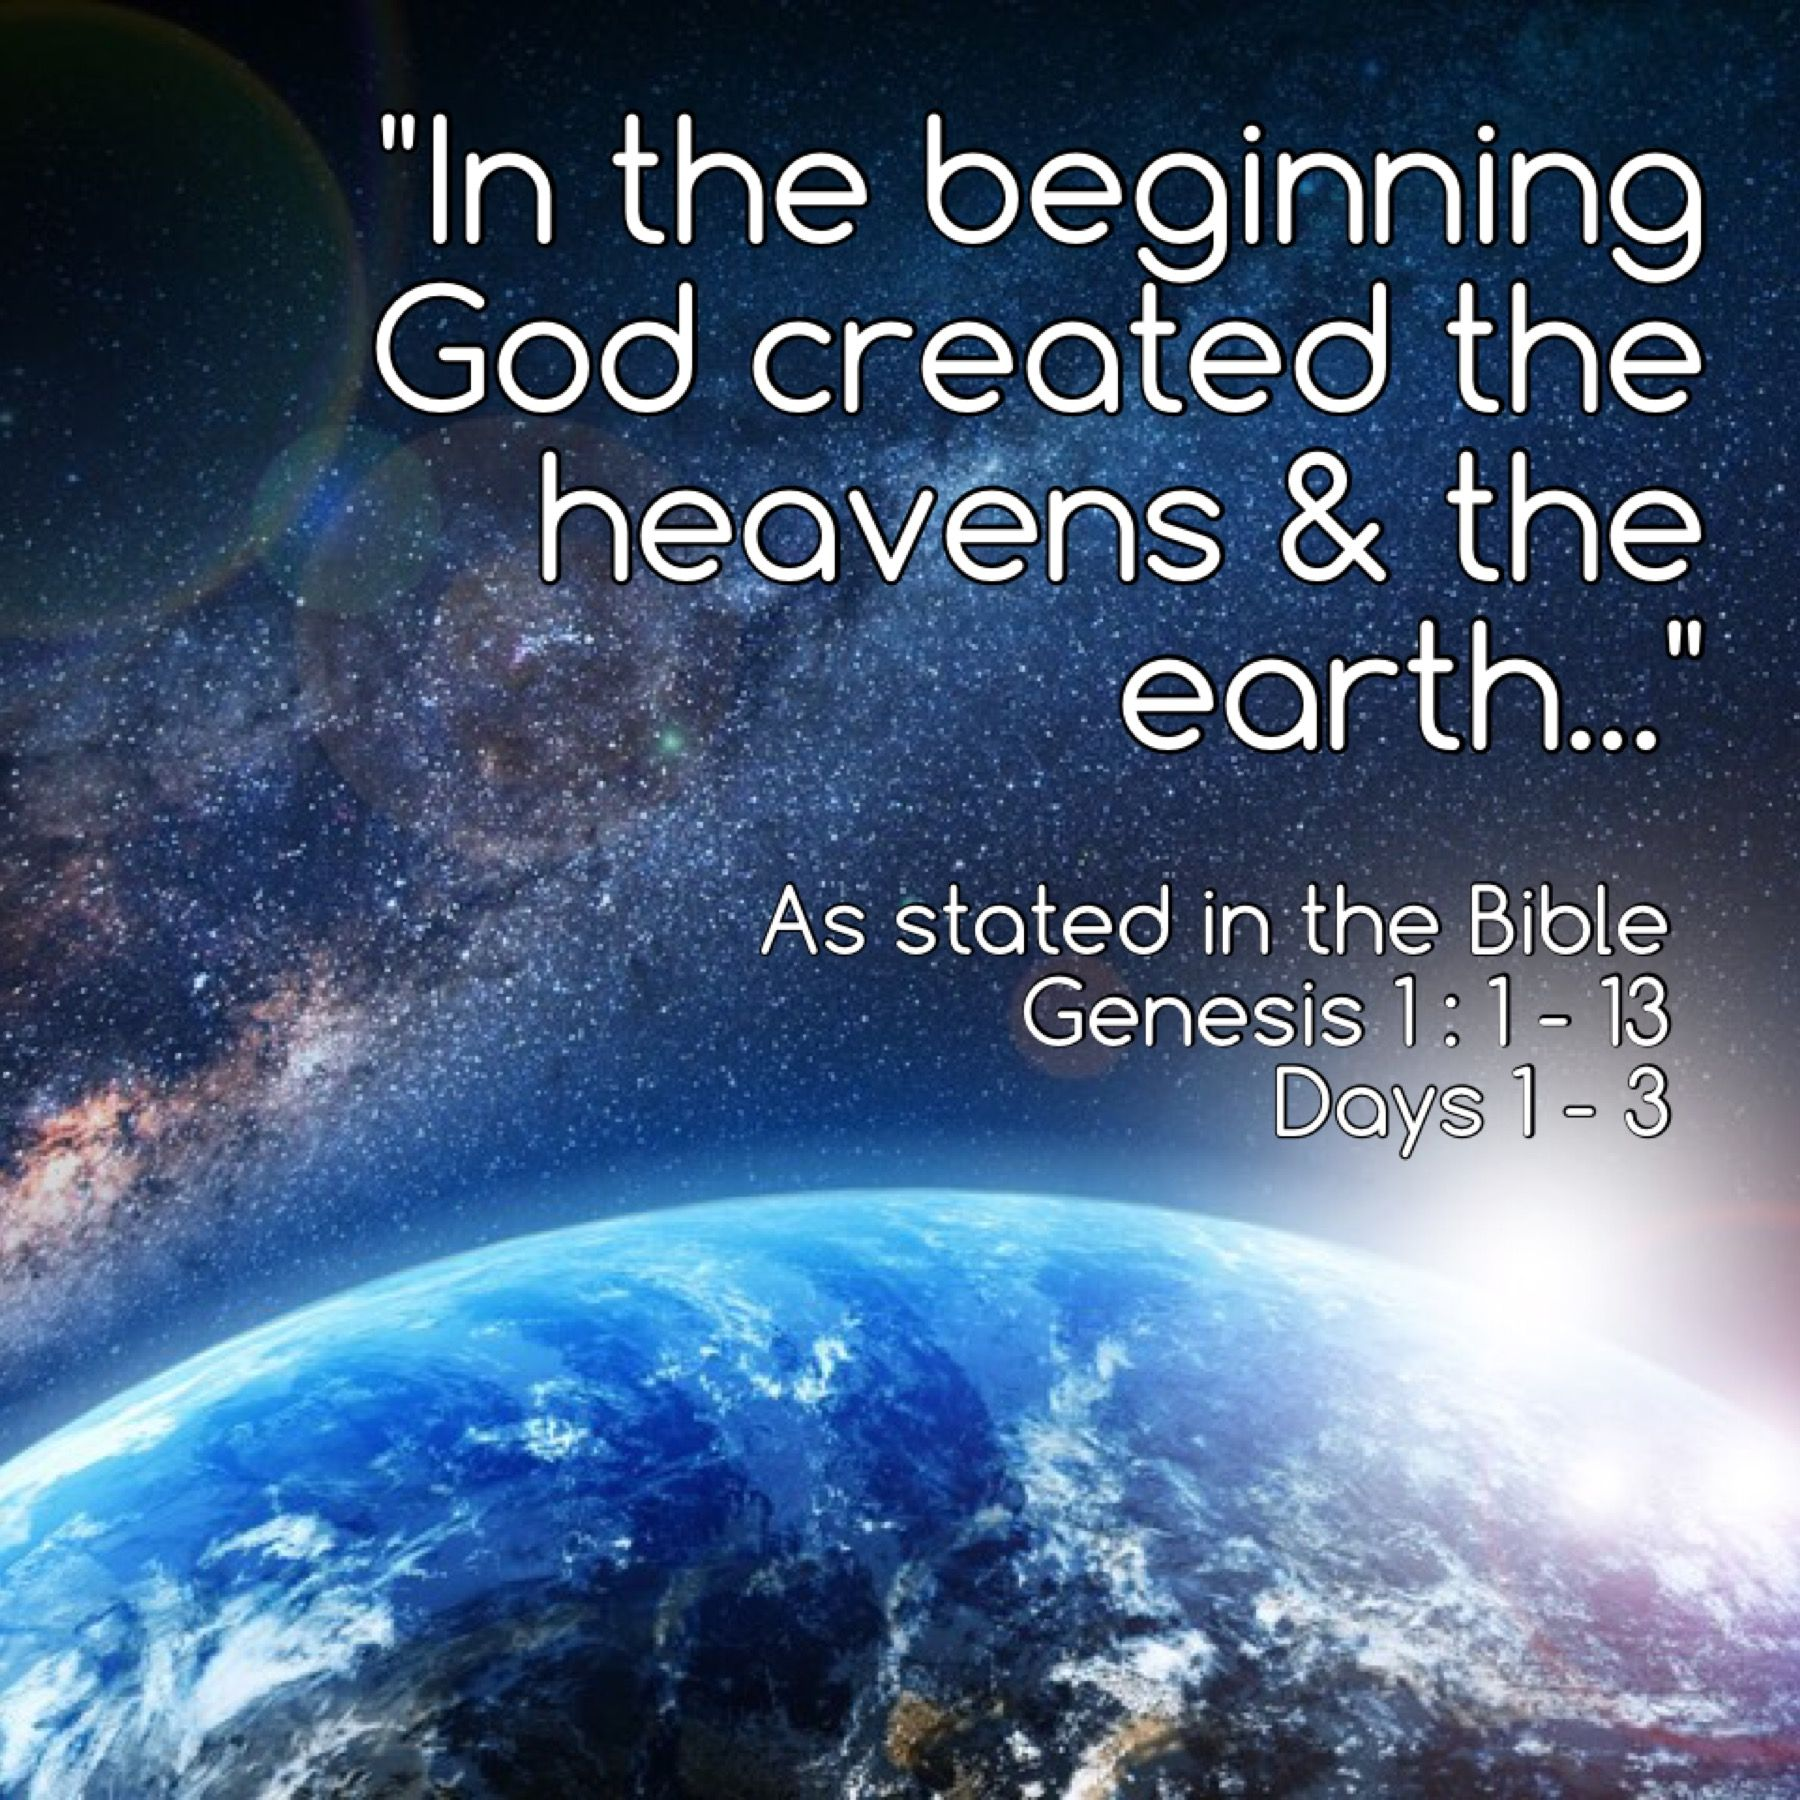 In the beginning God created the heavens and the earth ...